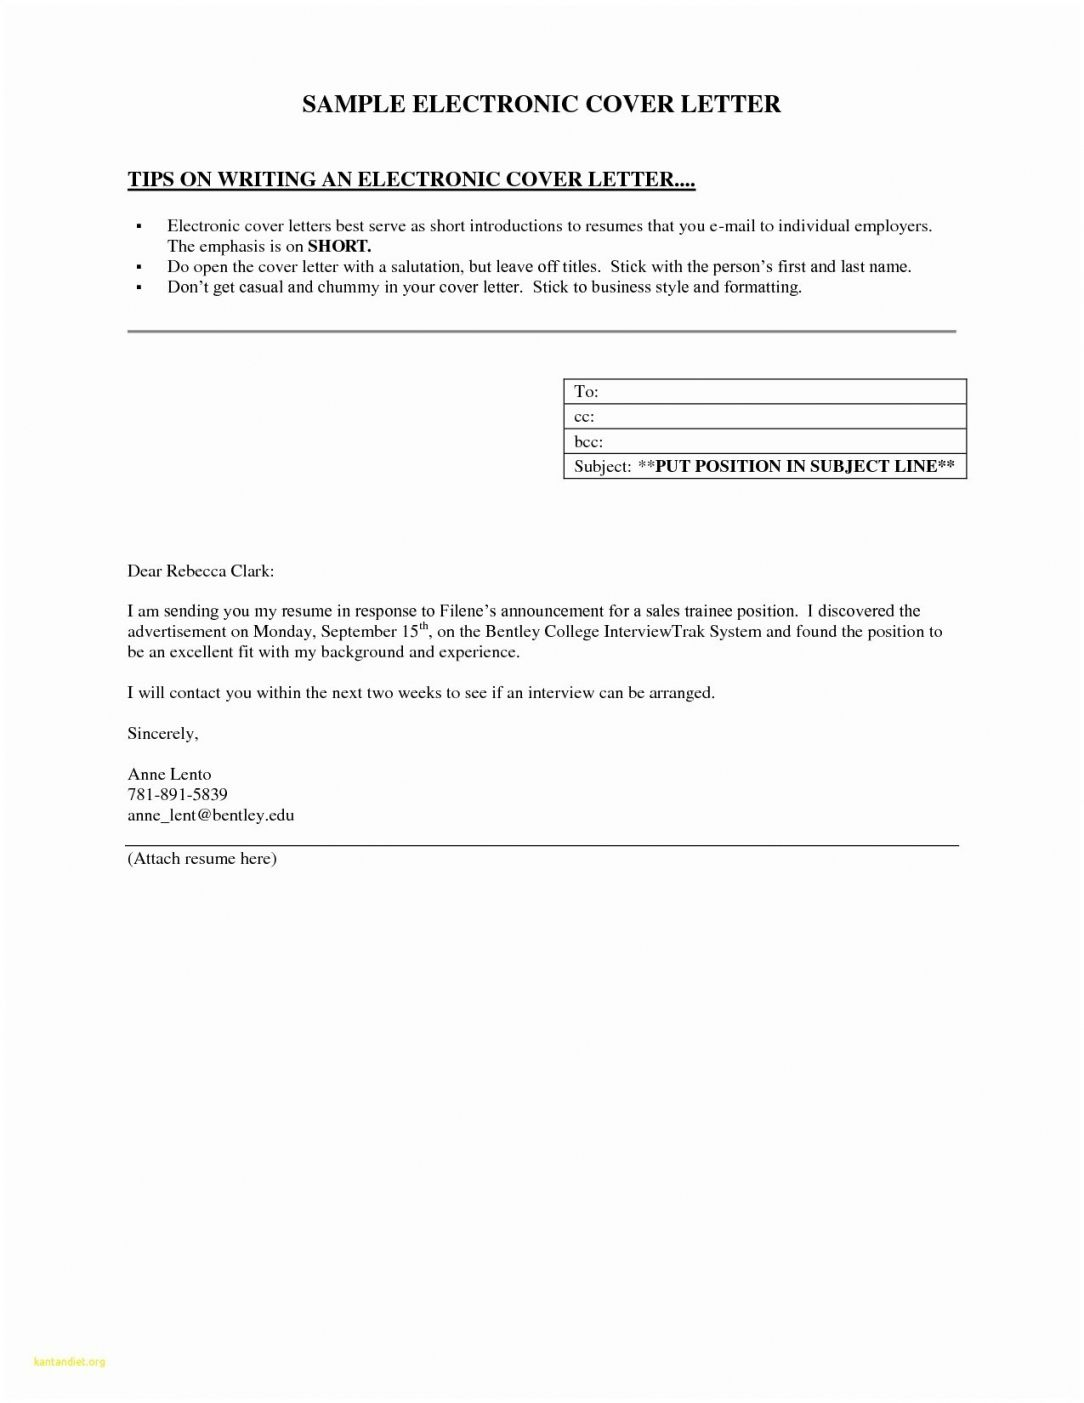 25 Email Cover Letter In 2020 Cover Letter For Resume Resume